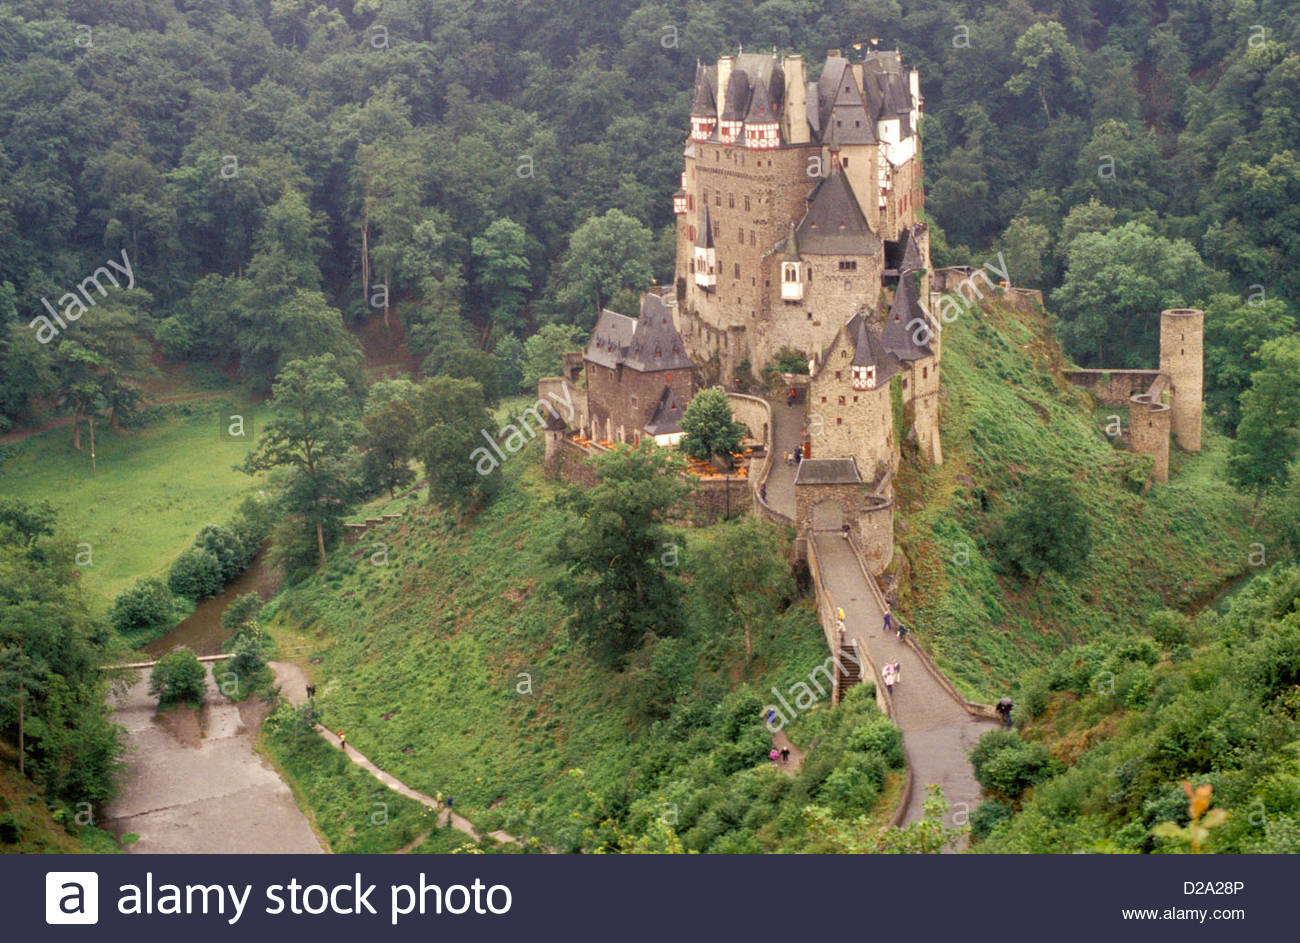 Burg Eltz The Moselle Valley, Germany. Mosel Valley. Burg Eltz. Castle Stock Photo, Royalty Free ...